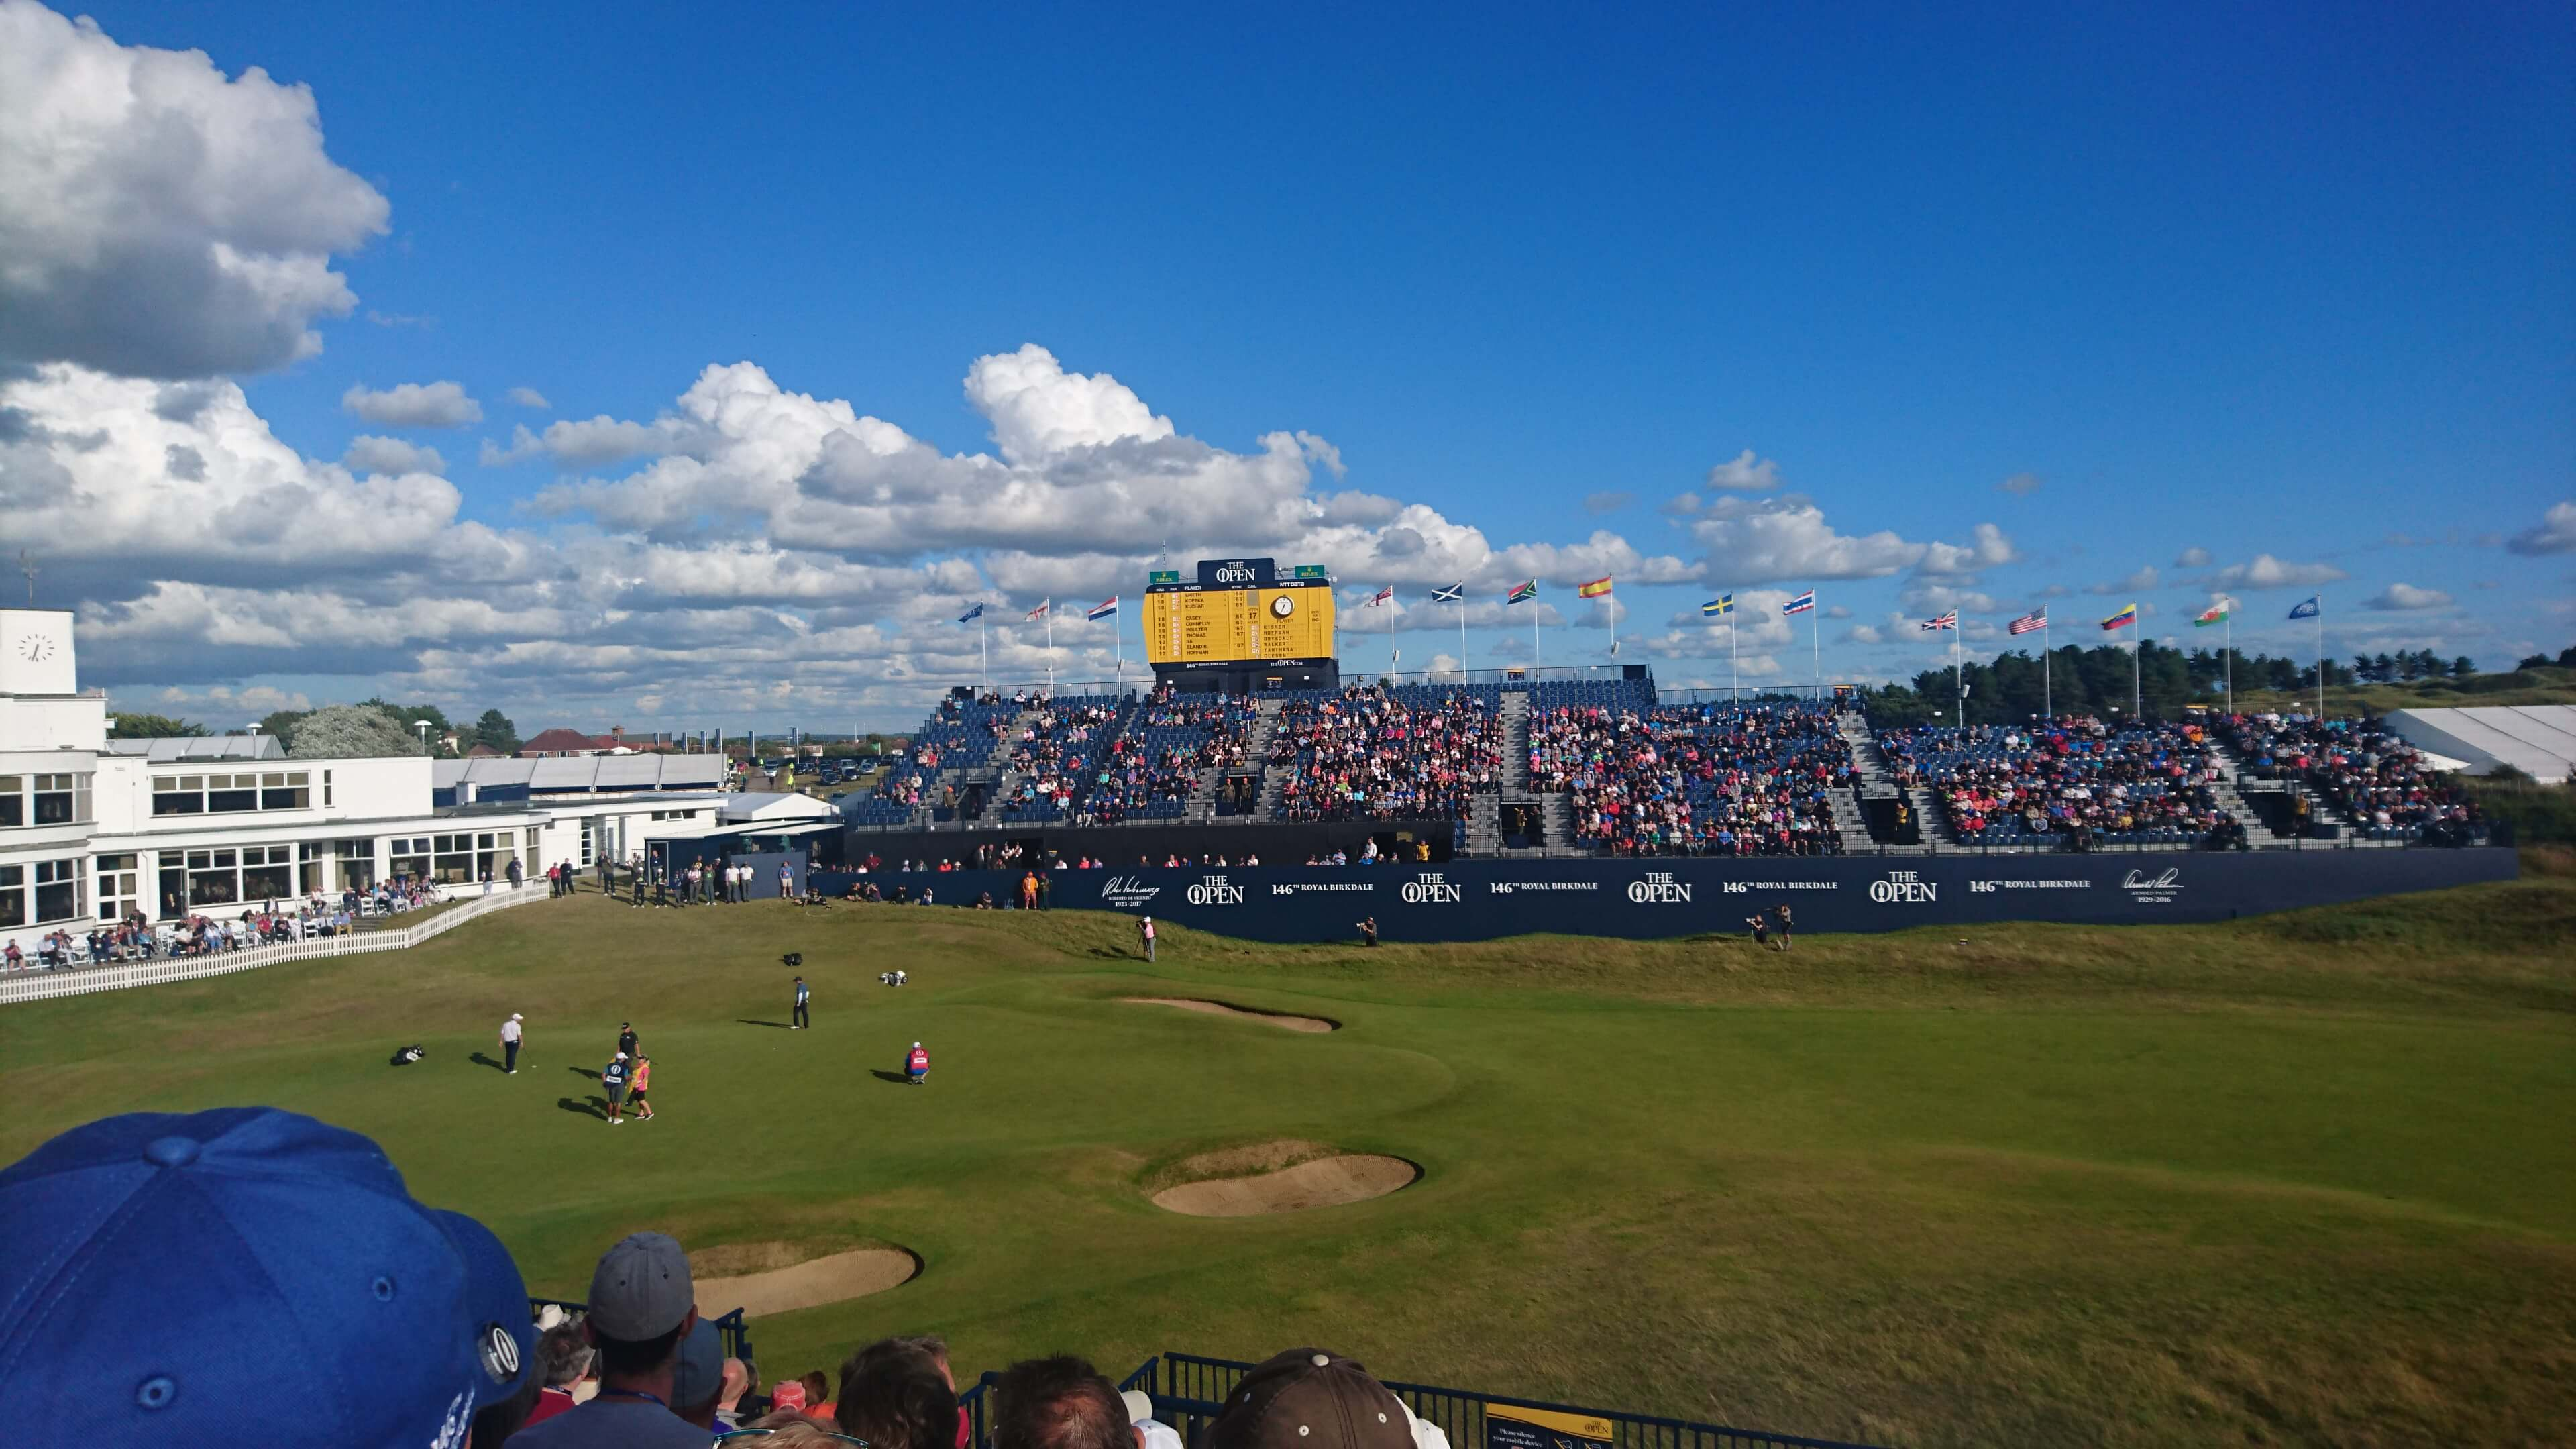 Glencor Golf Visit The Open 2017 at Royal Birkdale 3